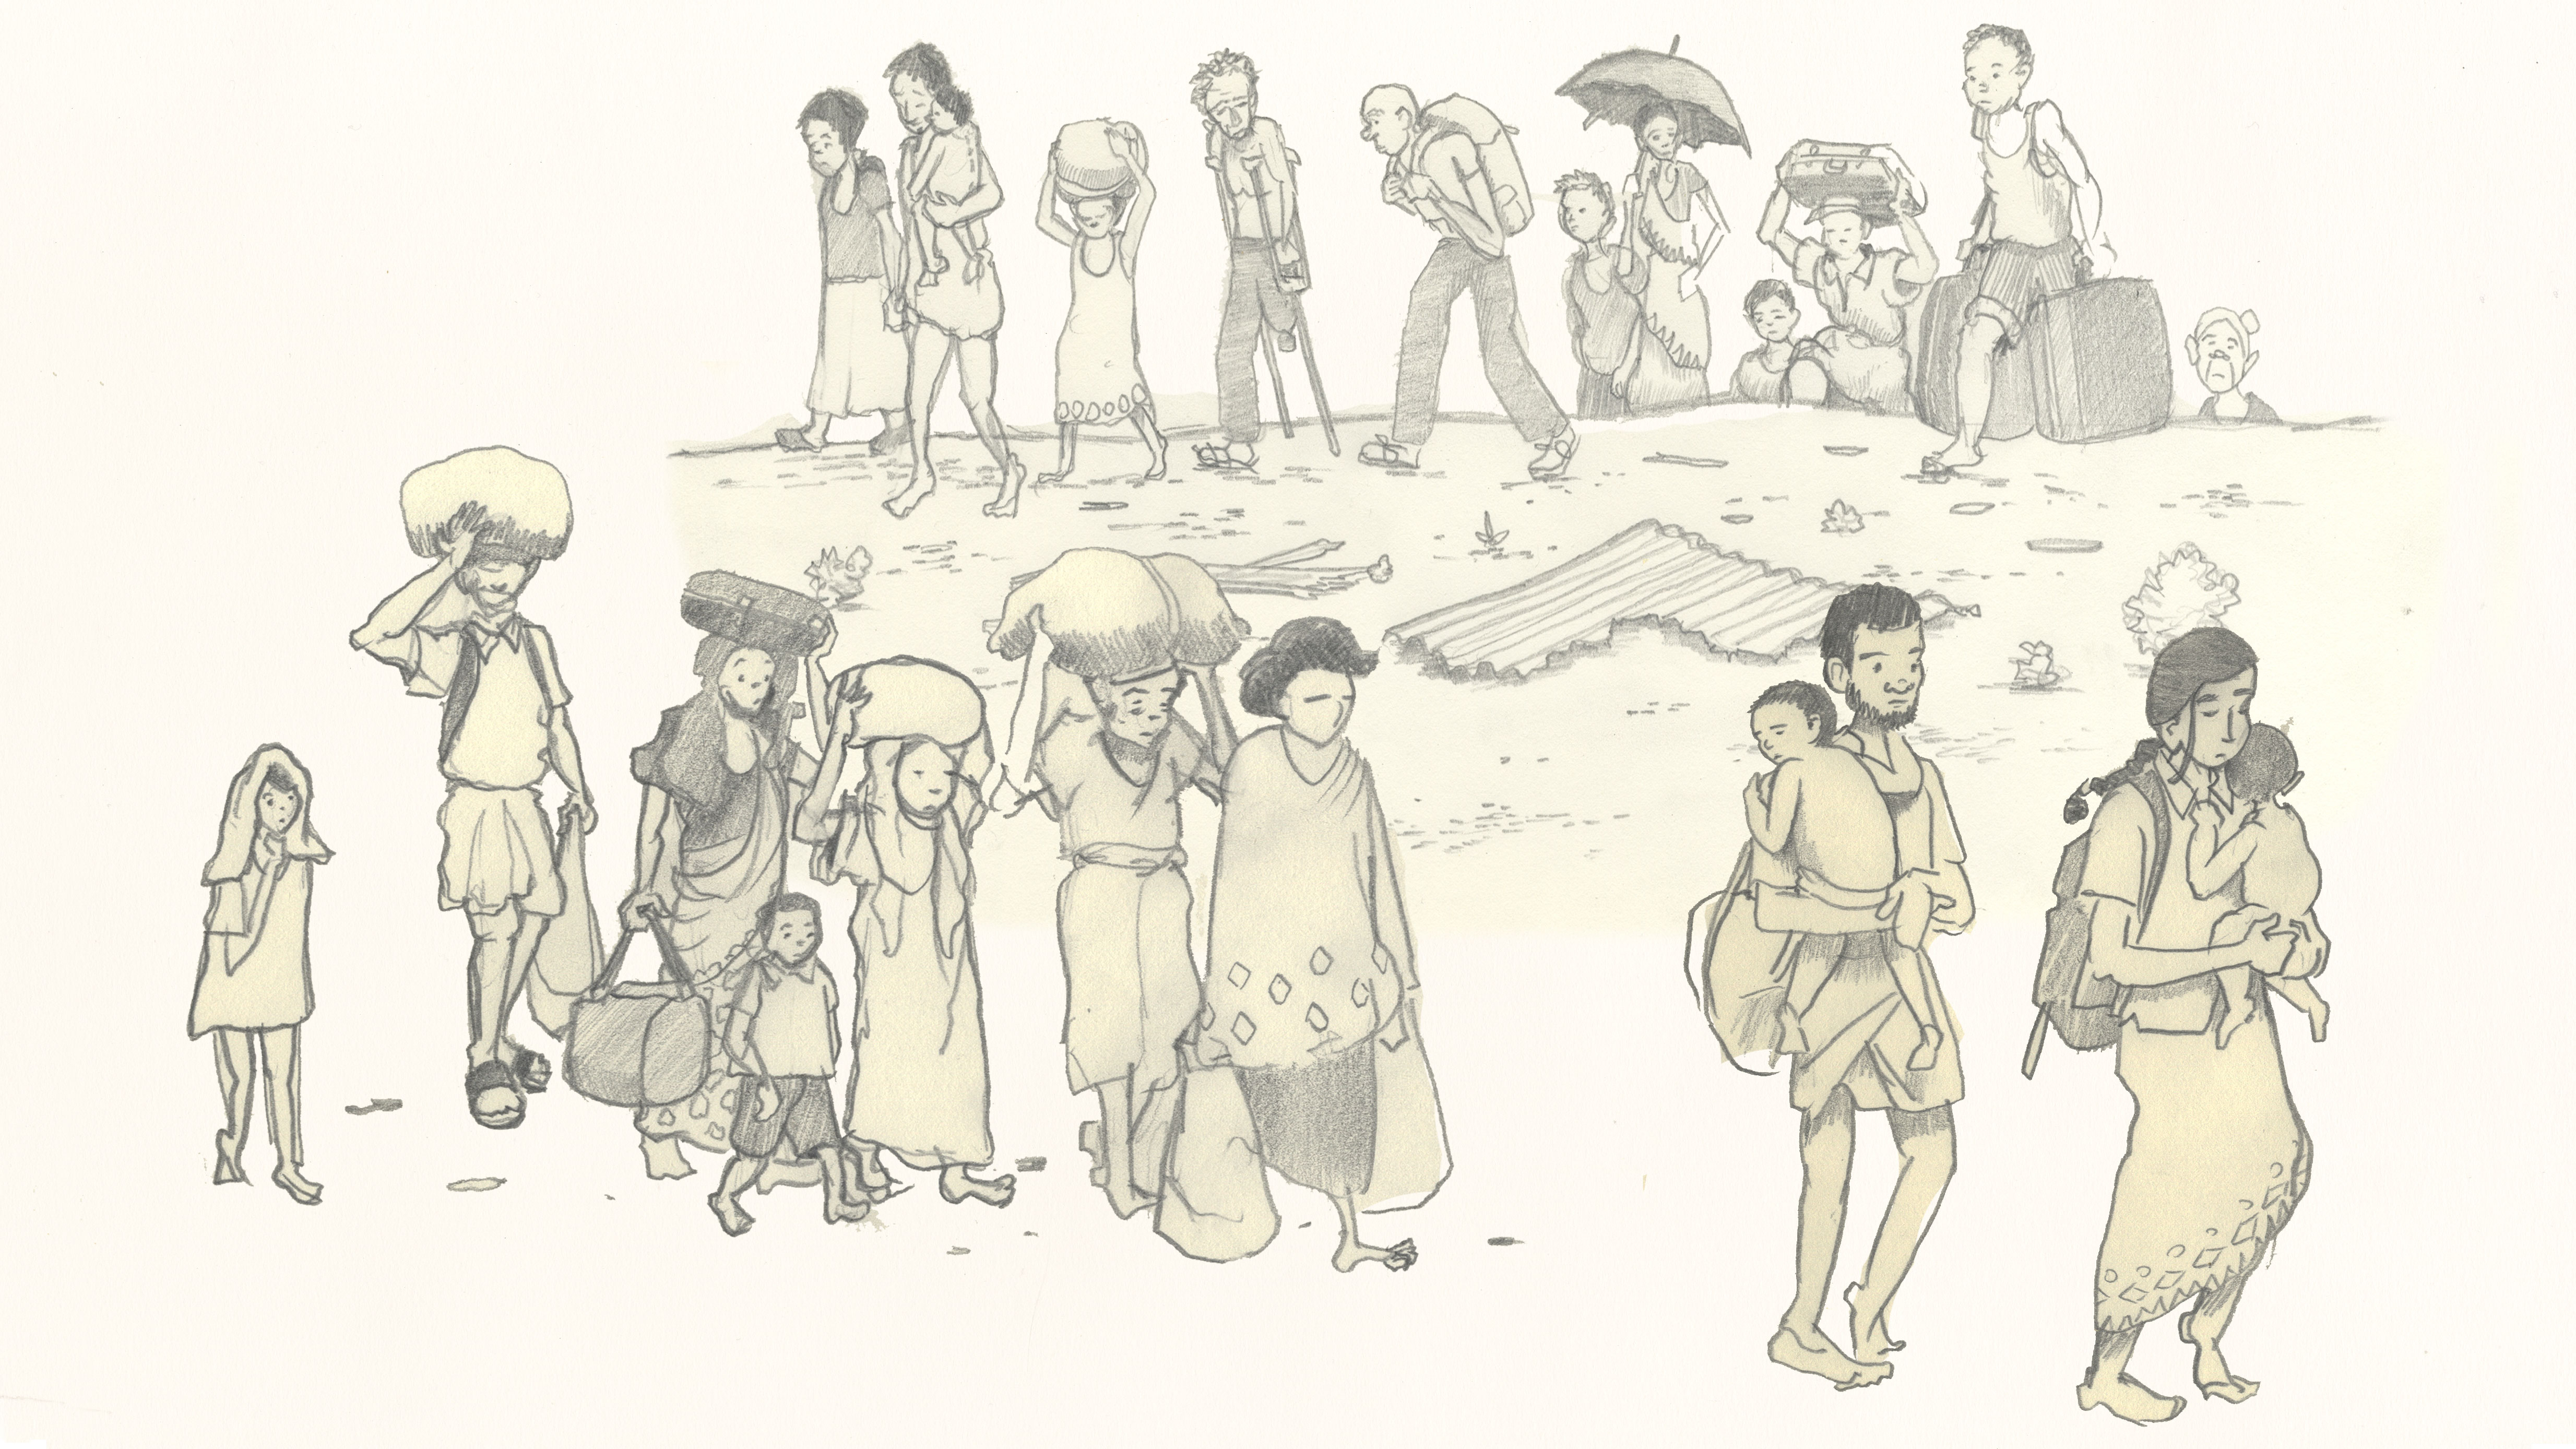 Cartoon illustration of people fleeing from a conflict with babies, luggage etc